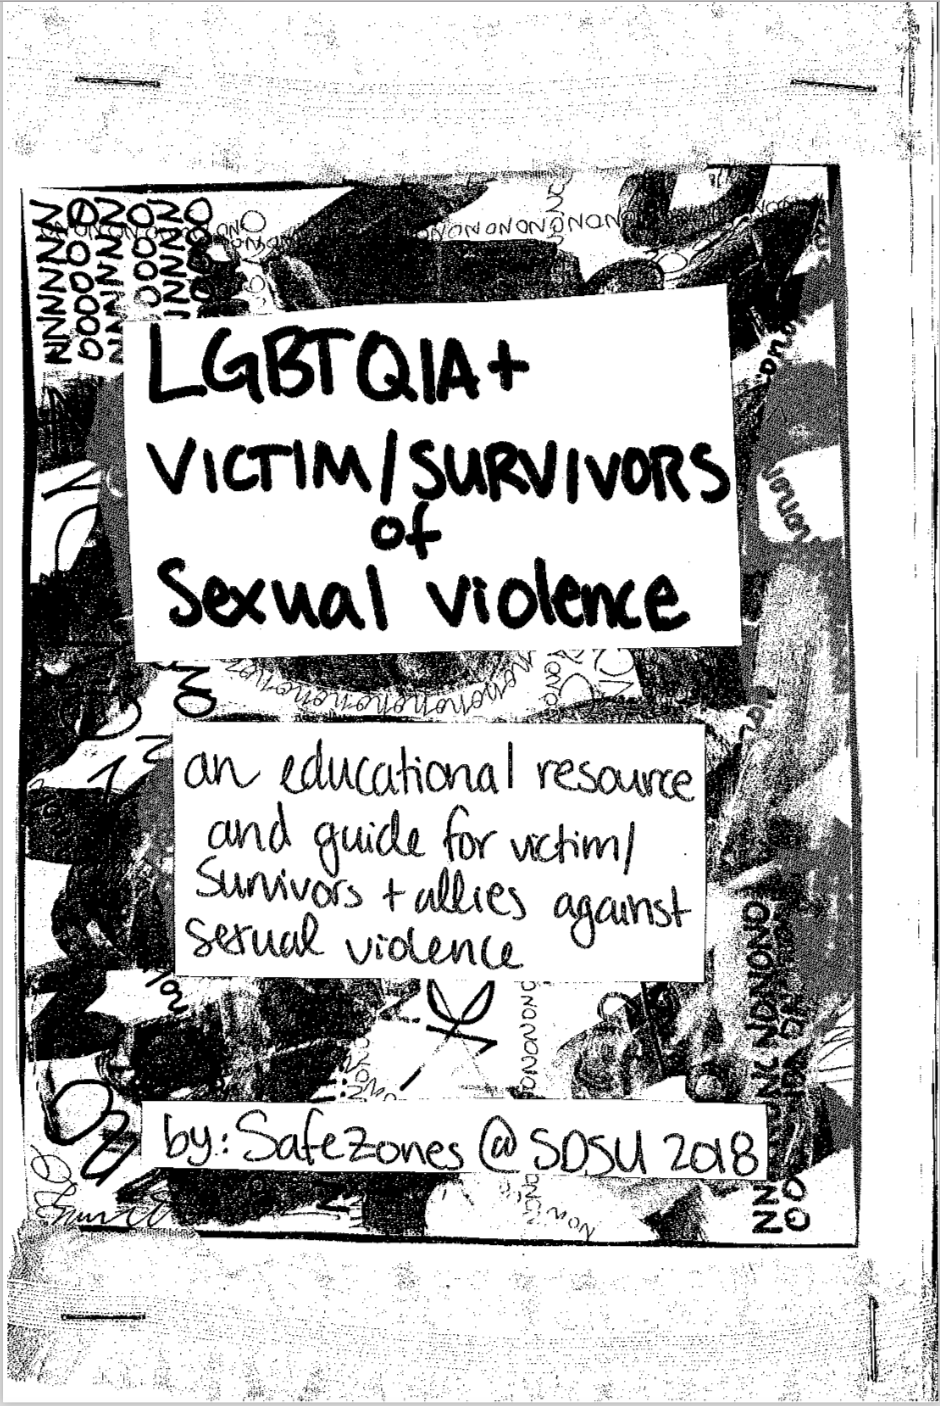 Zine & Resource Guide for LGBTQIA+ Victim/survivors of sexual violence - Made by SafeZones interns at SDSU in 2018 Click here to download